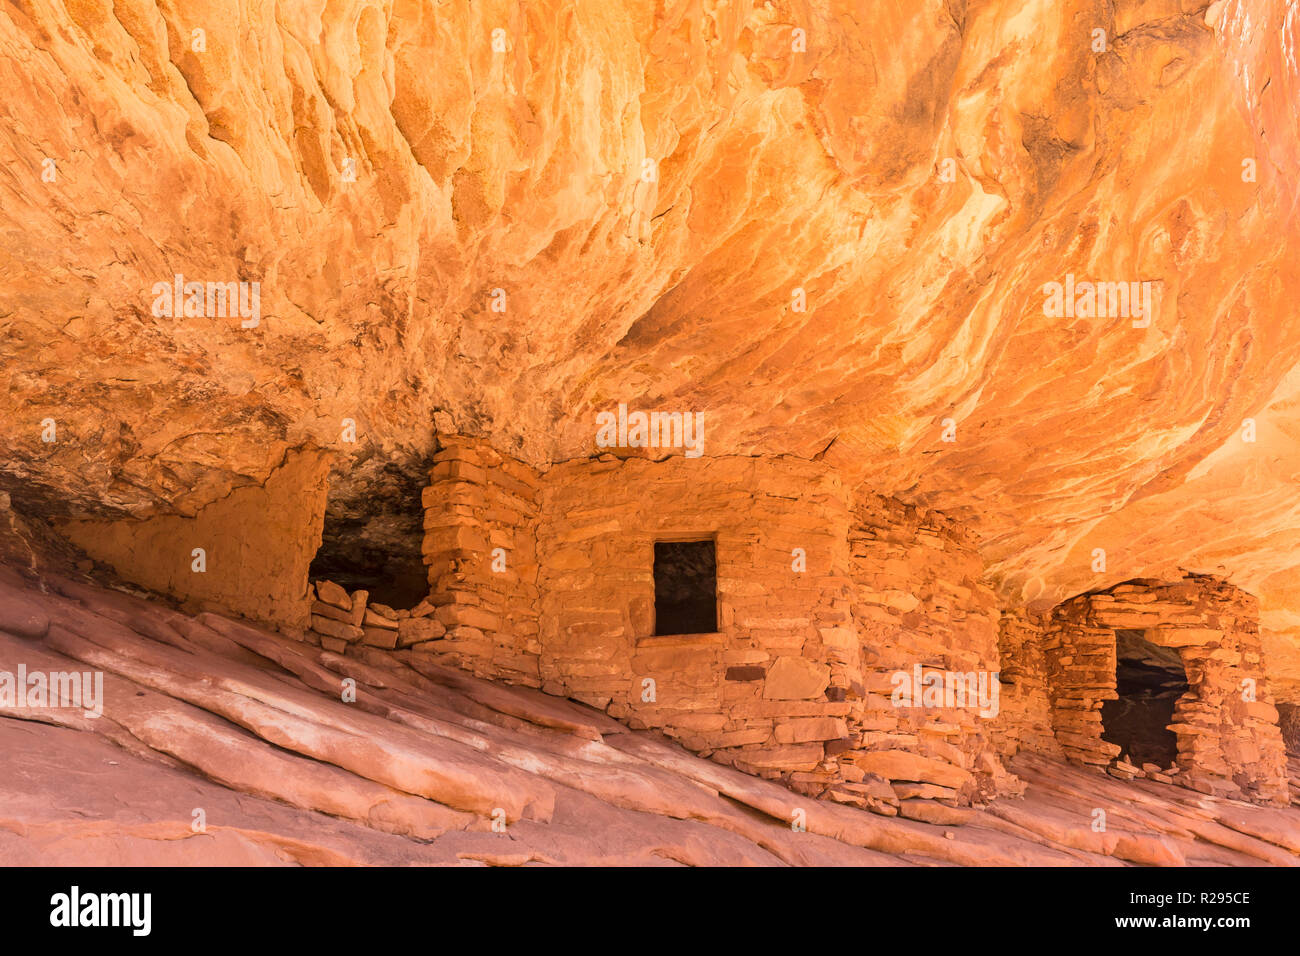 Puebloan ruins under  a cliff in Mule Canyon in the Cedar Mesa Plateau in Bears Ears National Monument in Utah look like the ancient stone granaries a - Stock Image